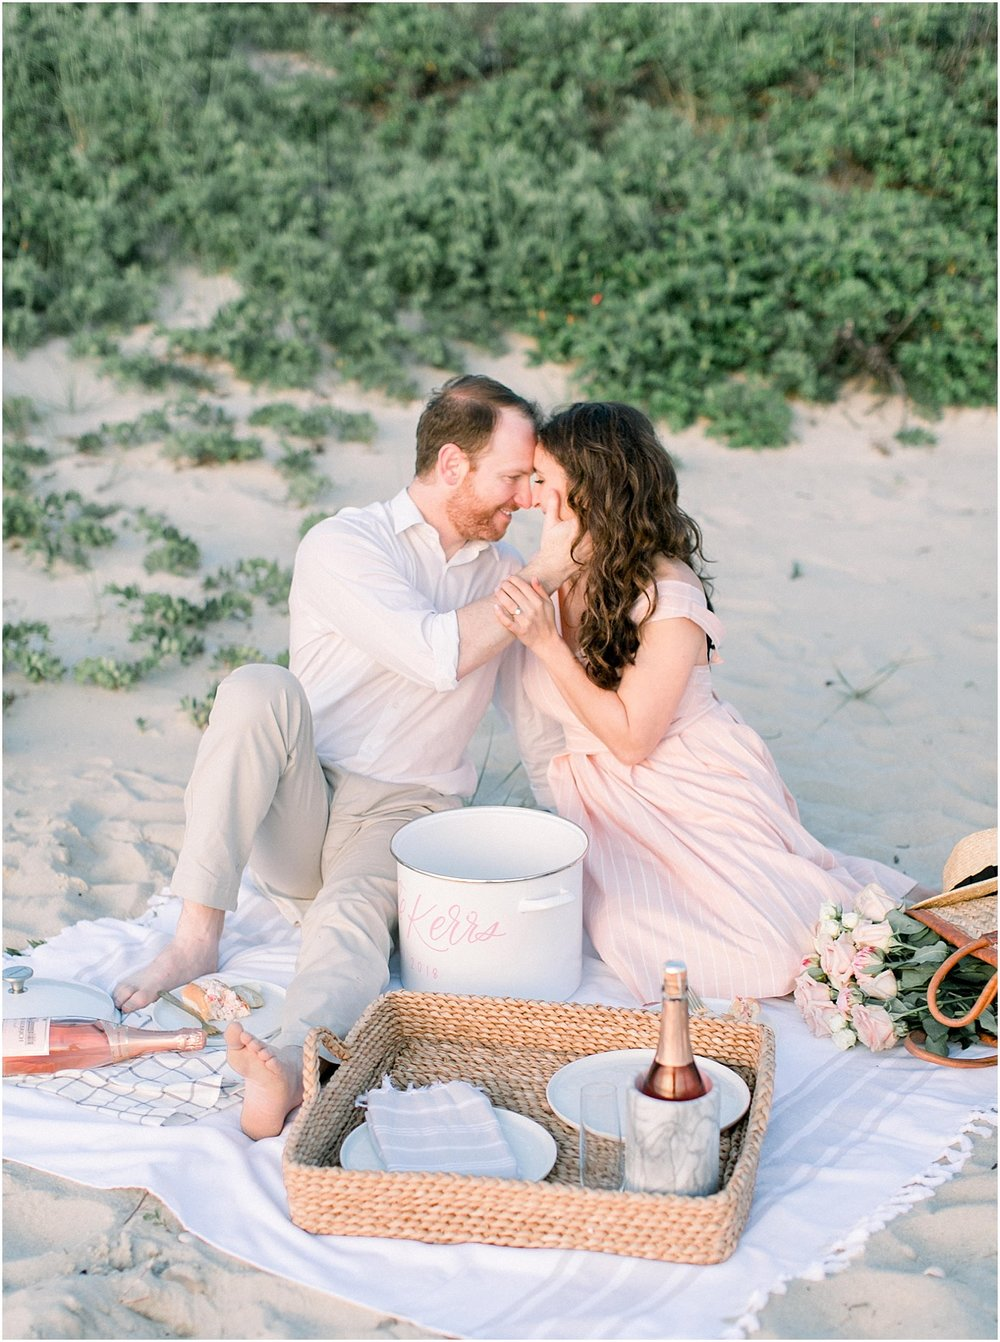 love_and_light_photographs_meredith_chris_engagement_martha_vineyard_marthas_nancys_cape_cod_boston_wedding_photographer_meredith_jane_photography_photo_0460.jpg